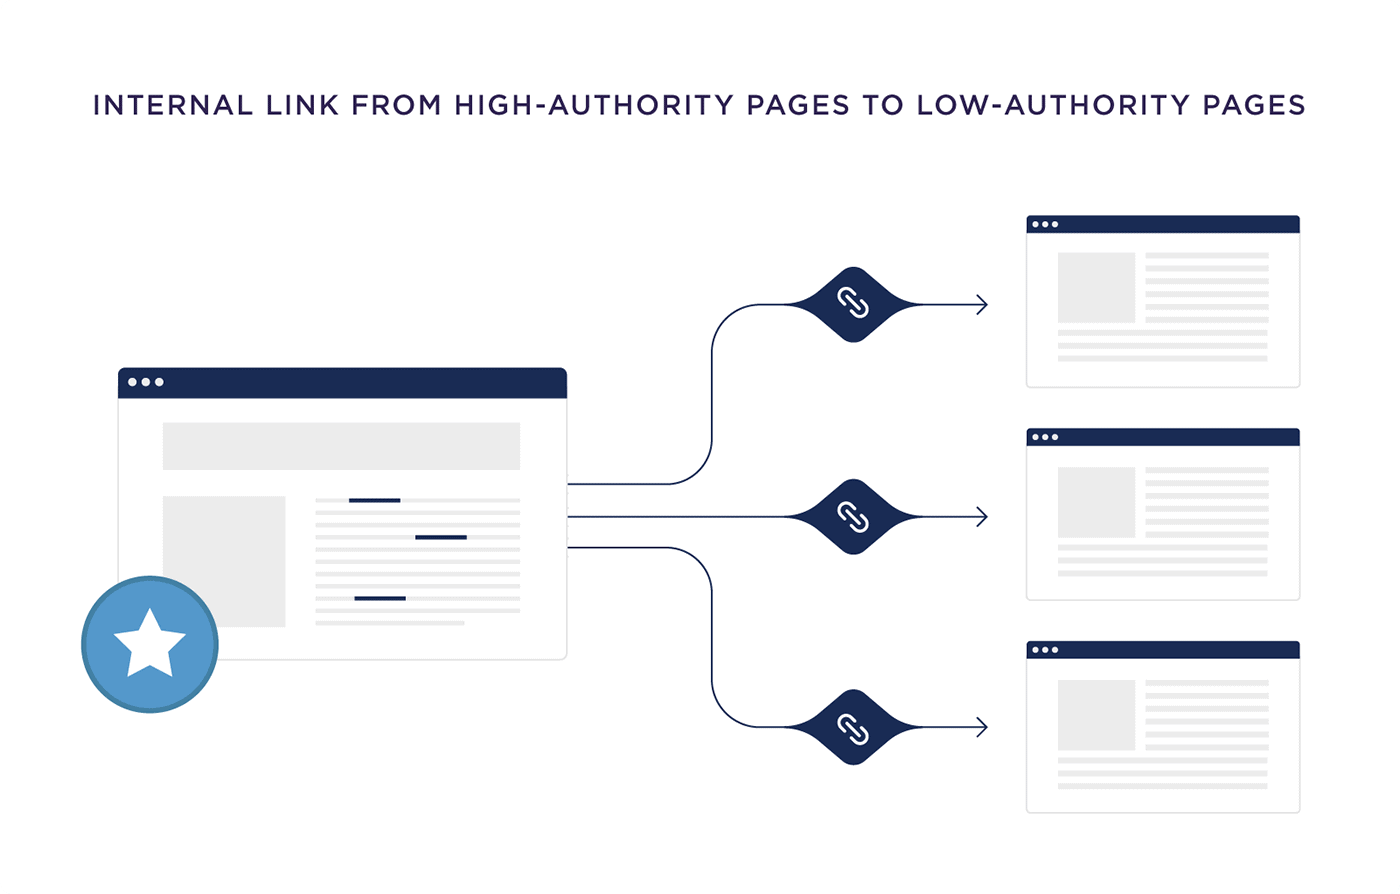 Internal link from high-authority pages to low-authority pages